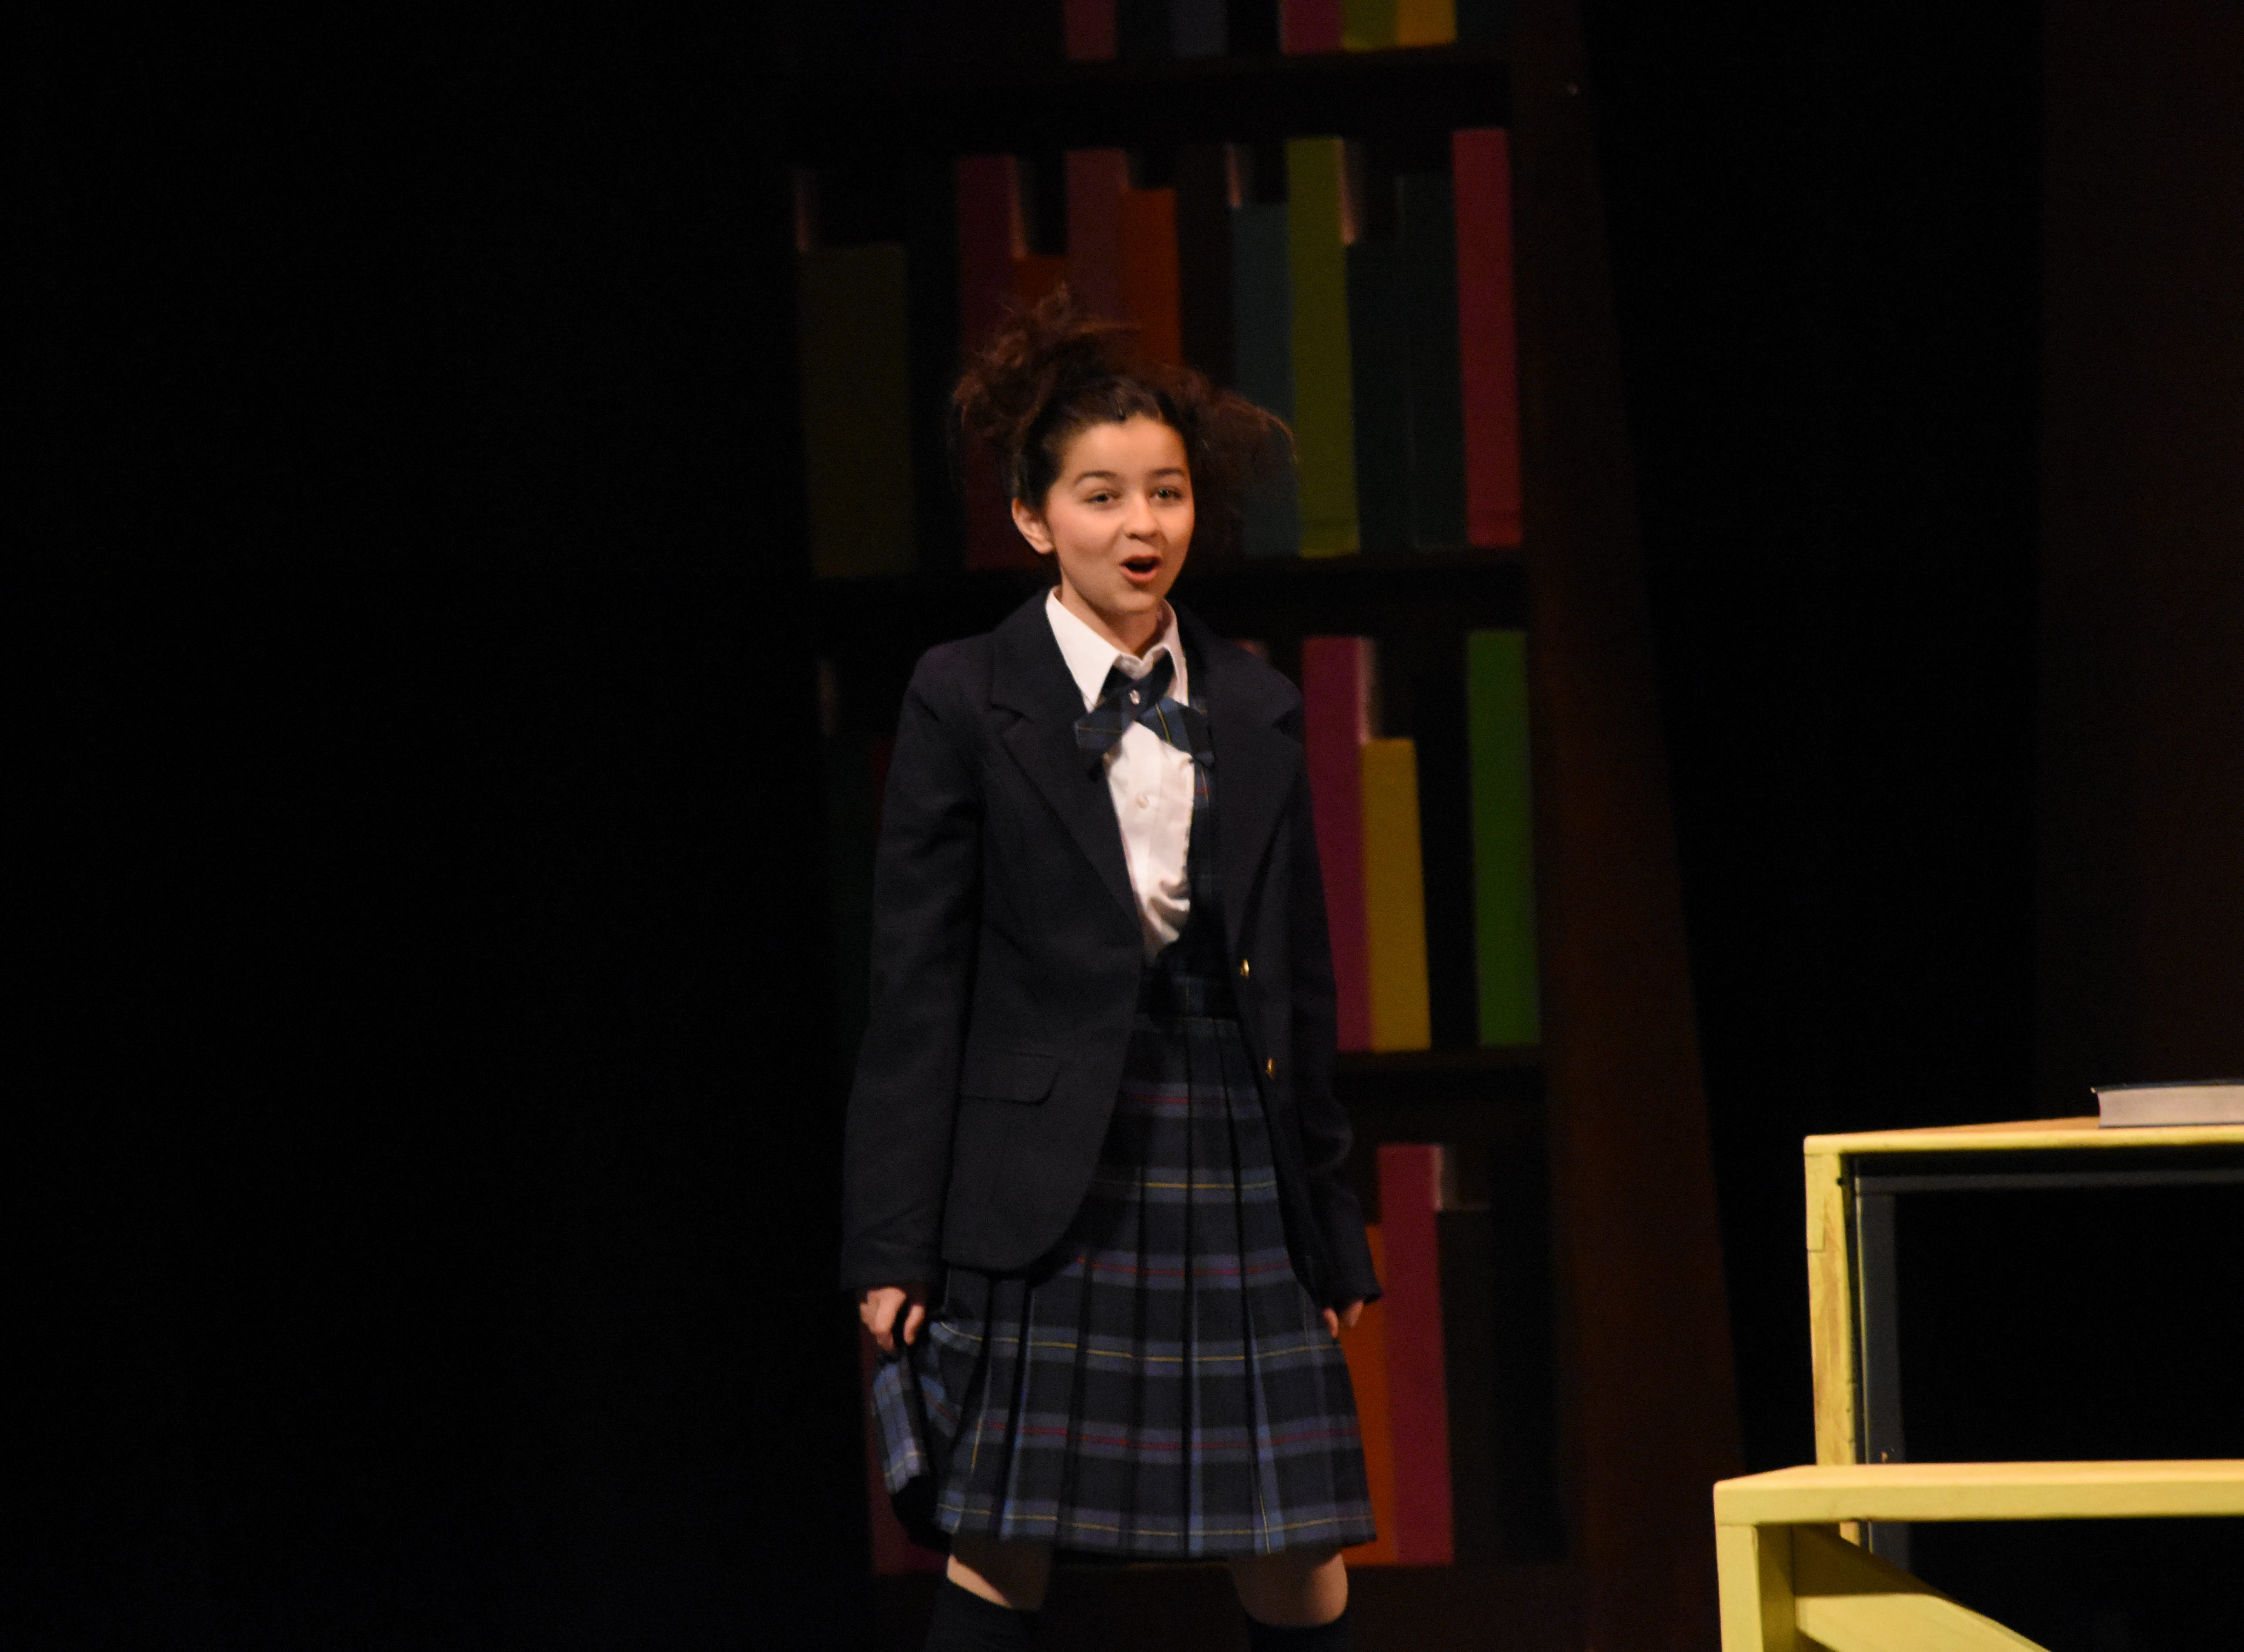 """Evie LaFleur (left) stars as Matilda and Karie LaFleur as Mrs. Phelps the librarian in Lagniappe Theatre Company's presentation of """"Matilda the Musical"""" based on the book by Roald Dahl. The show begins at 7 p.m. Thursday, Friday and Saturday and at 2:30 p.m. Sunday at the Coughlin-Saunders Performing Arts Center in downtown Alexandria. Also starring as Matilda is Chloe Lair. """"Matilda the Musical"""" is the story of an intelligent young girl who is born into an unloving family. She is sent away to school where her kind schoolteacher is impressed with her. The school's headmistress, however, doesn't like children and doles out cruel punishments for those who break her rules."""